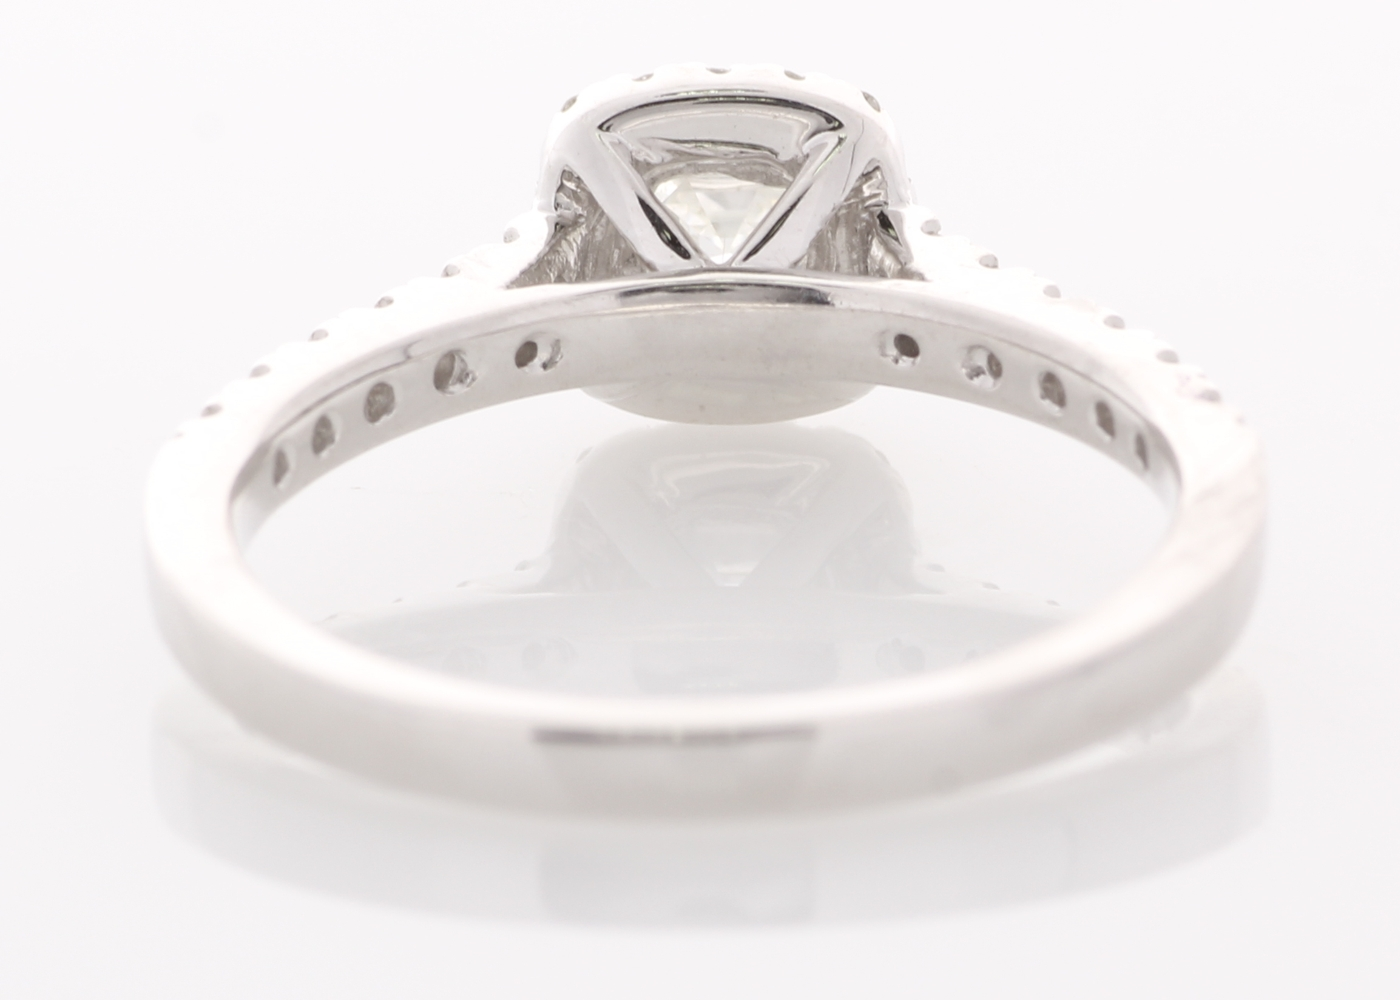 Lot 49 - 18ct White Gold Single Stone With Halo Setting Ring 0.76